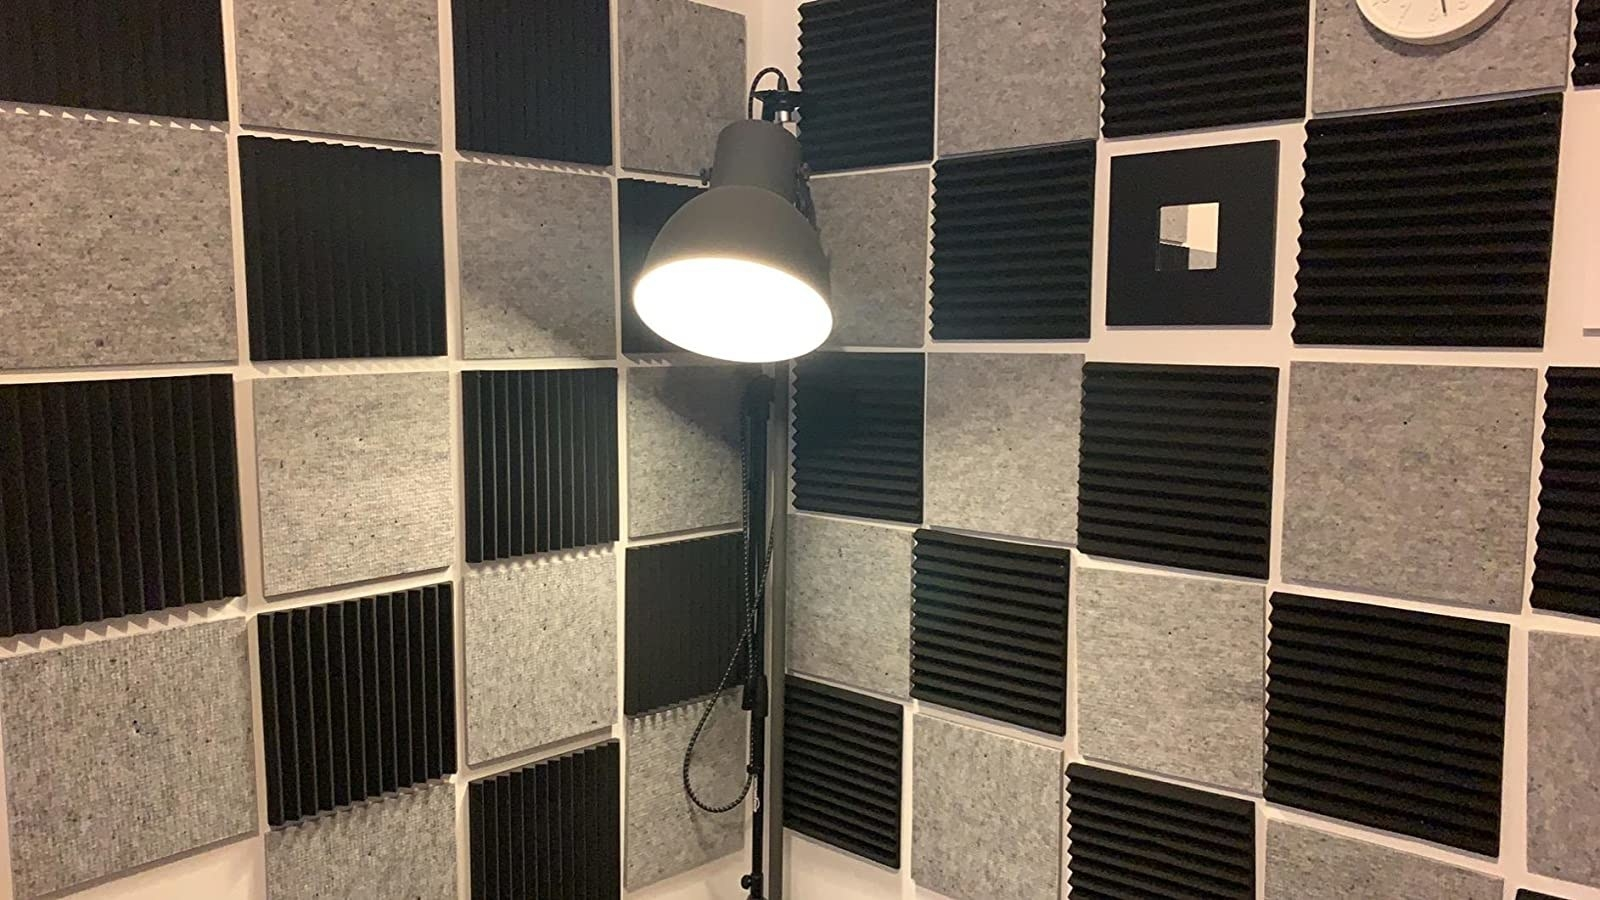 reviewer photo showing the panels in two colors arranged in a checkered pattern on their wall in their at-home recording studio